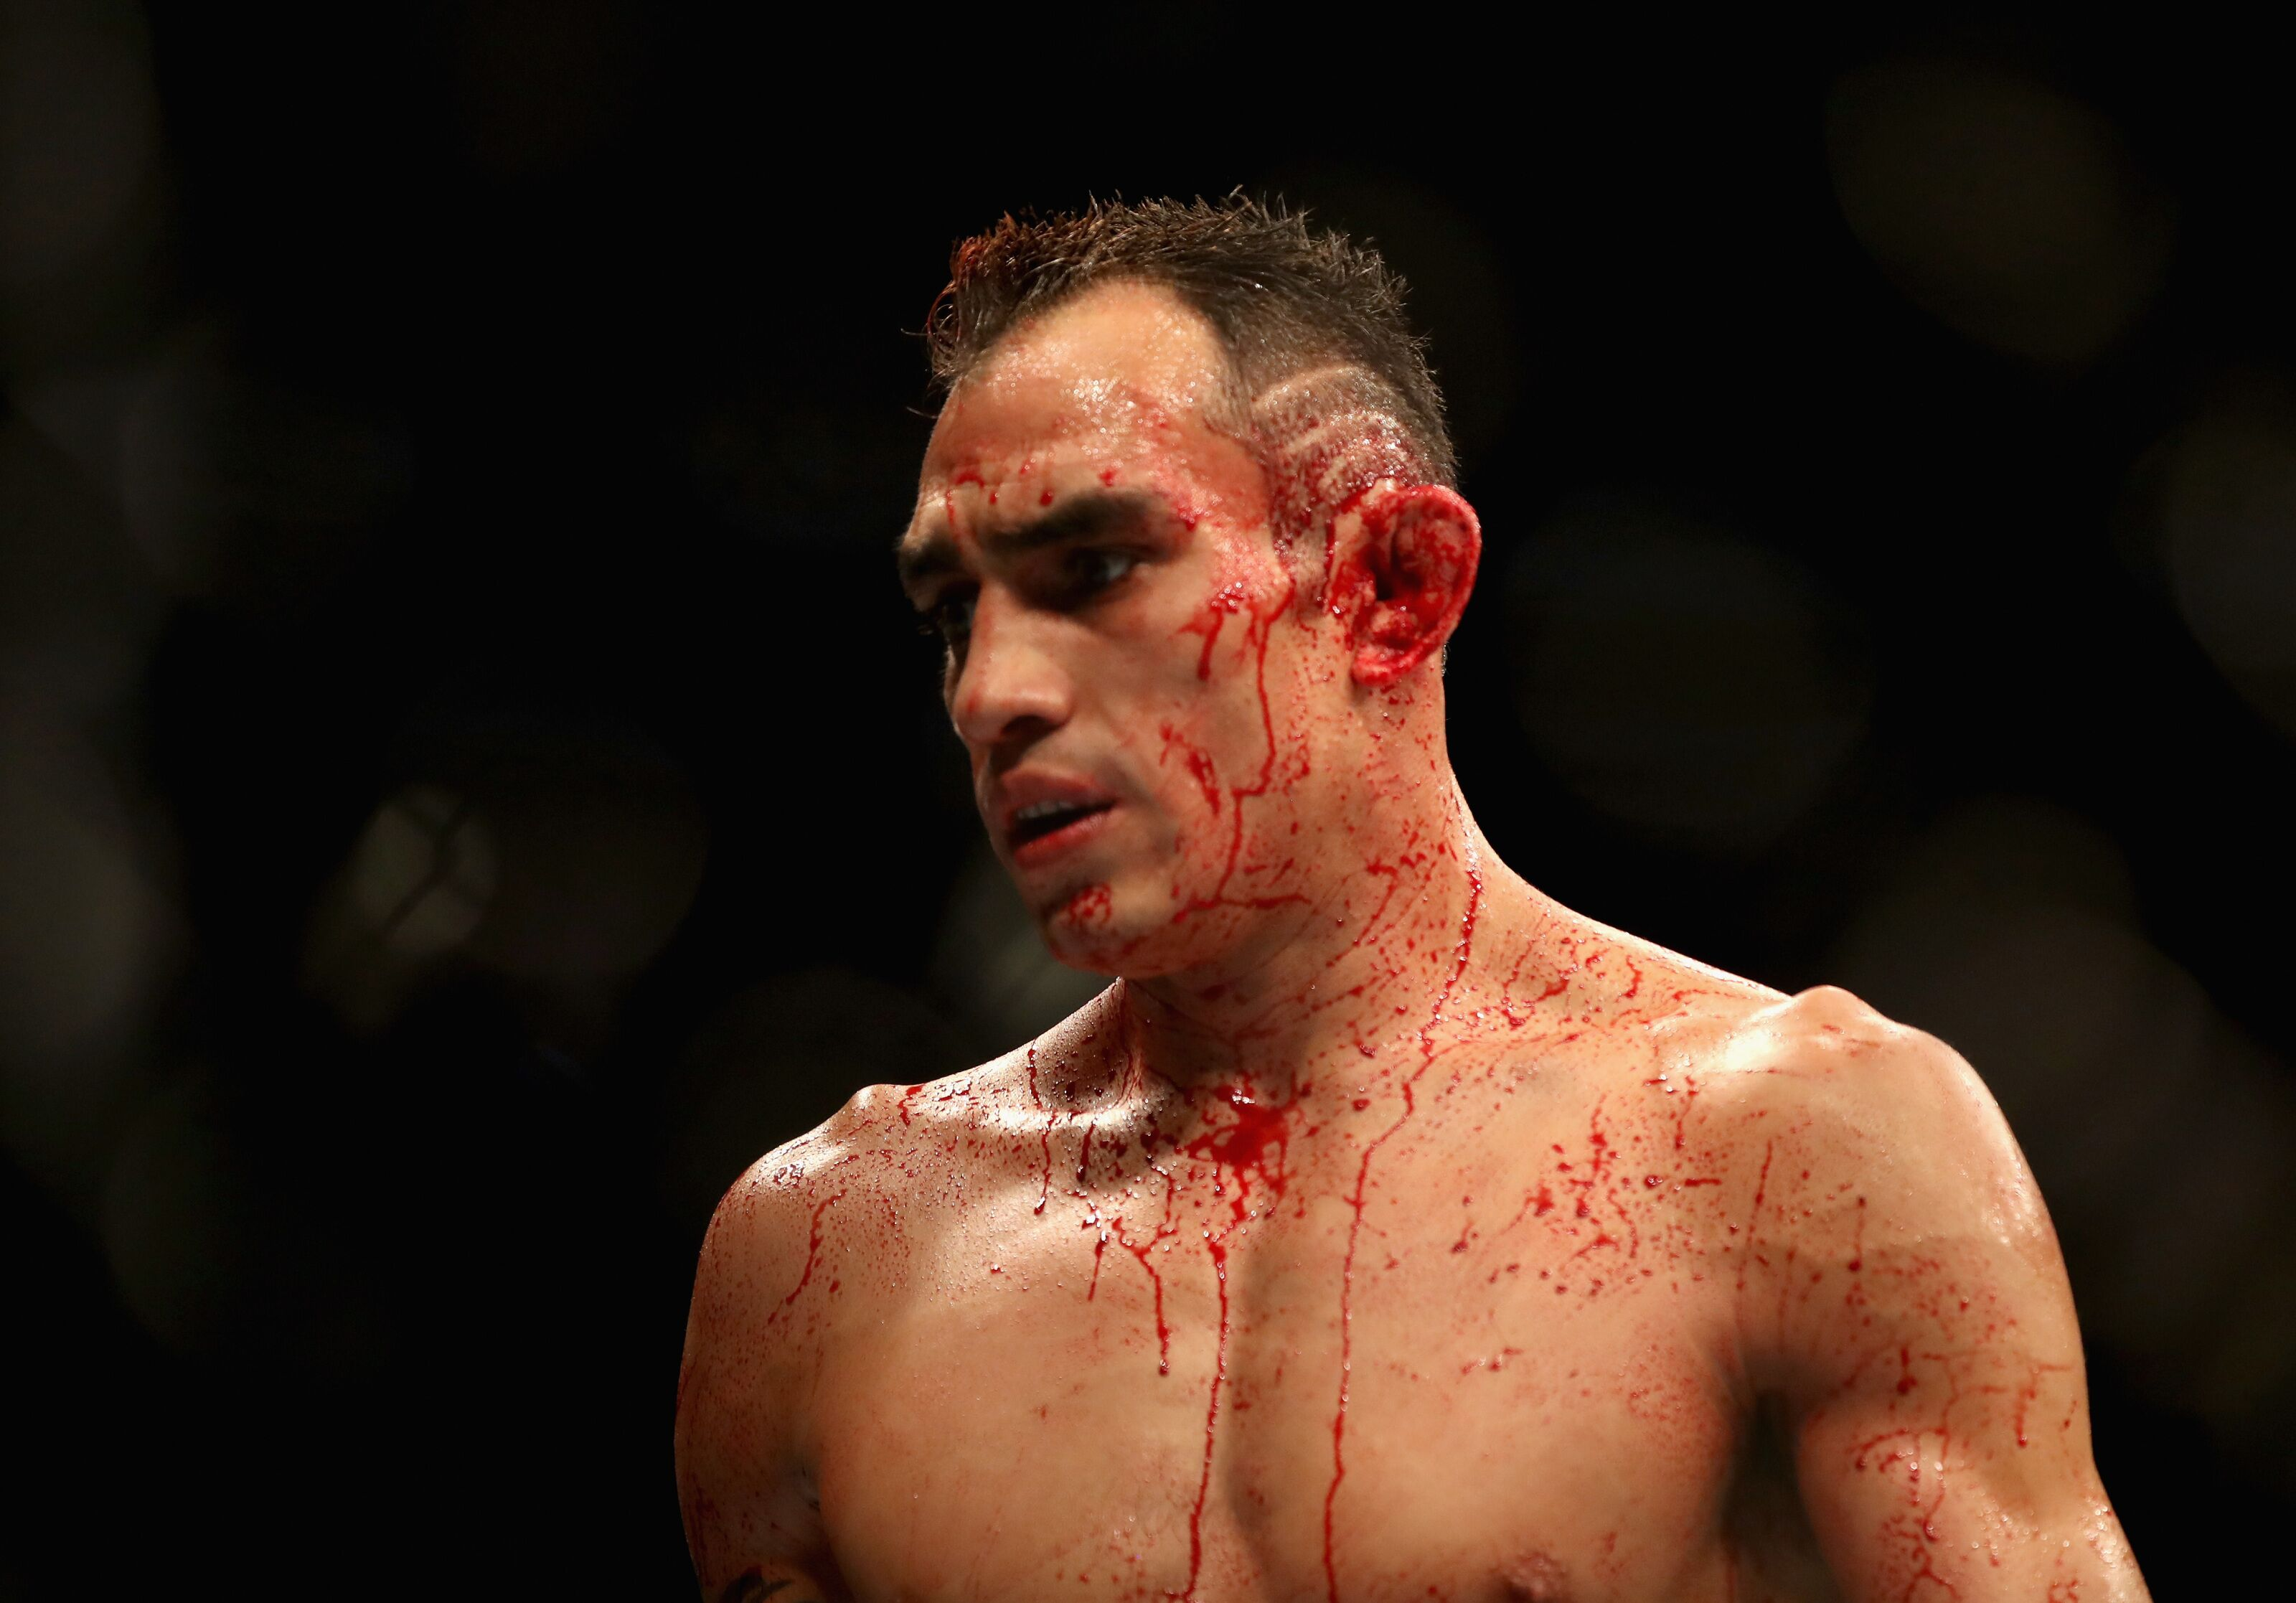 LAS VEGAS, NV - OCTOBER 06: Tony Ferguson looks on in his lightweight bout during the UFC 229 event inside T-Mobile Arena on October 6, 2018 in Las Vegas, Nevada. (Photo by Christian Petersen/Zuffa LLC/Zuffa LLC)